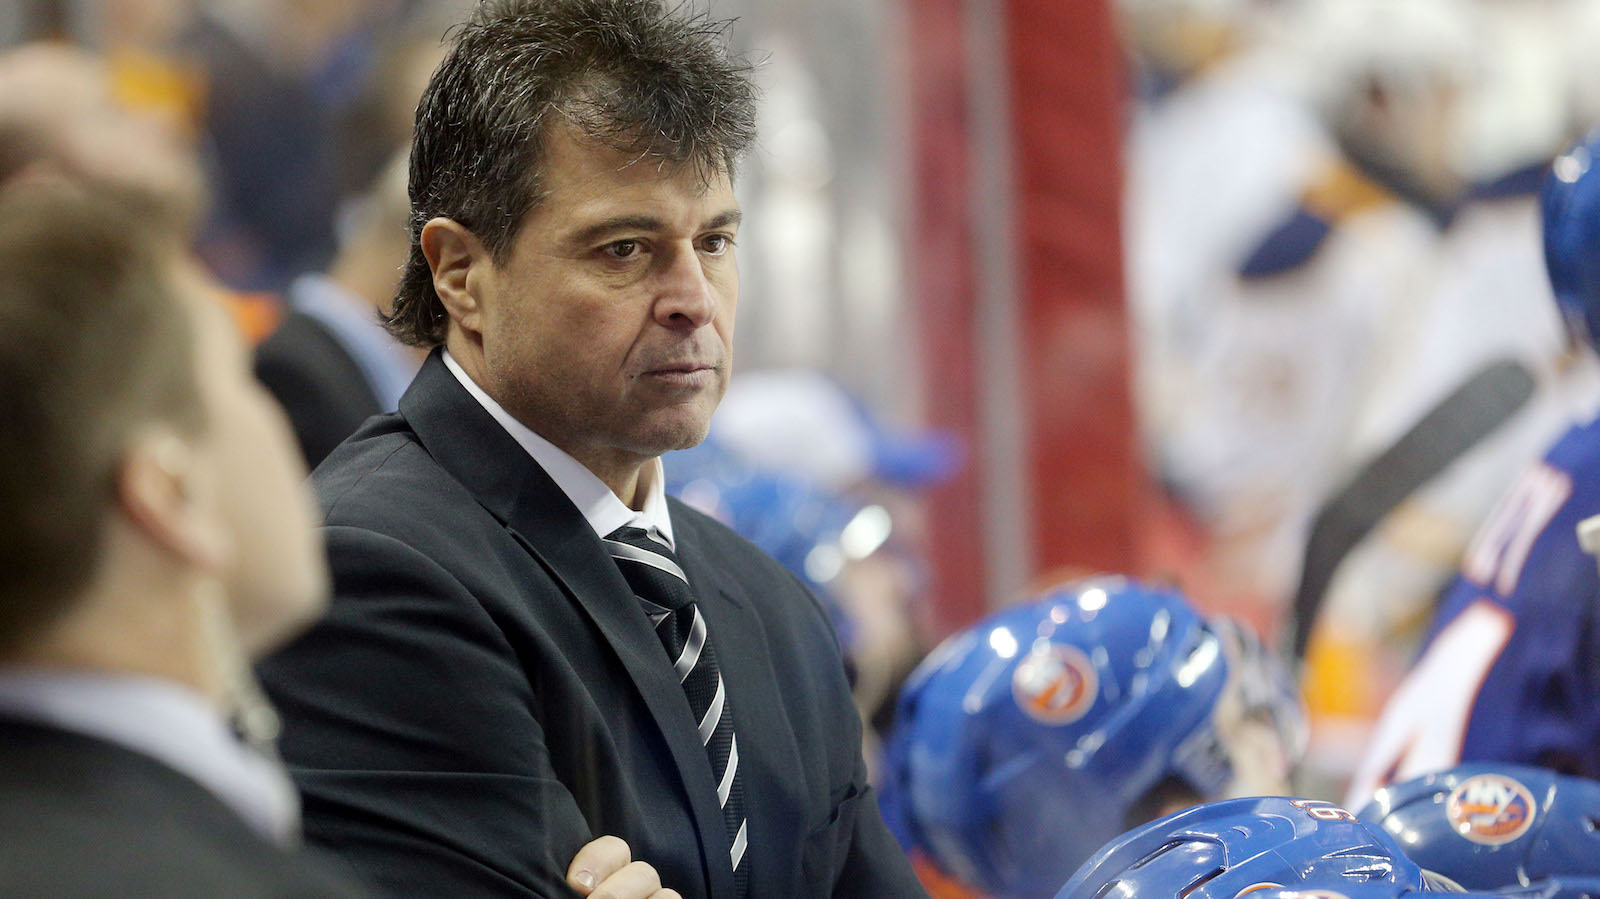 Dec 23, 2016; Brooklyn, NY, USA; New York Islanders head coach Jack Capuano looks on coaches against the Buffalo Sabres during the second period at Barclays Center. Mandatory Credit: Brad Penner-USA TODAY Sports